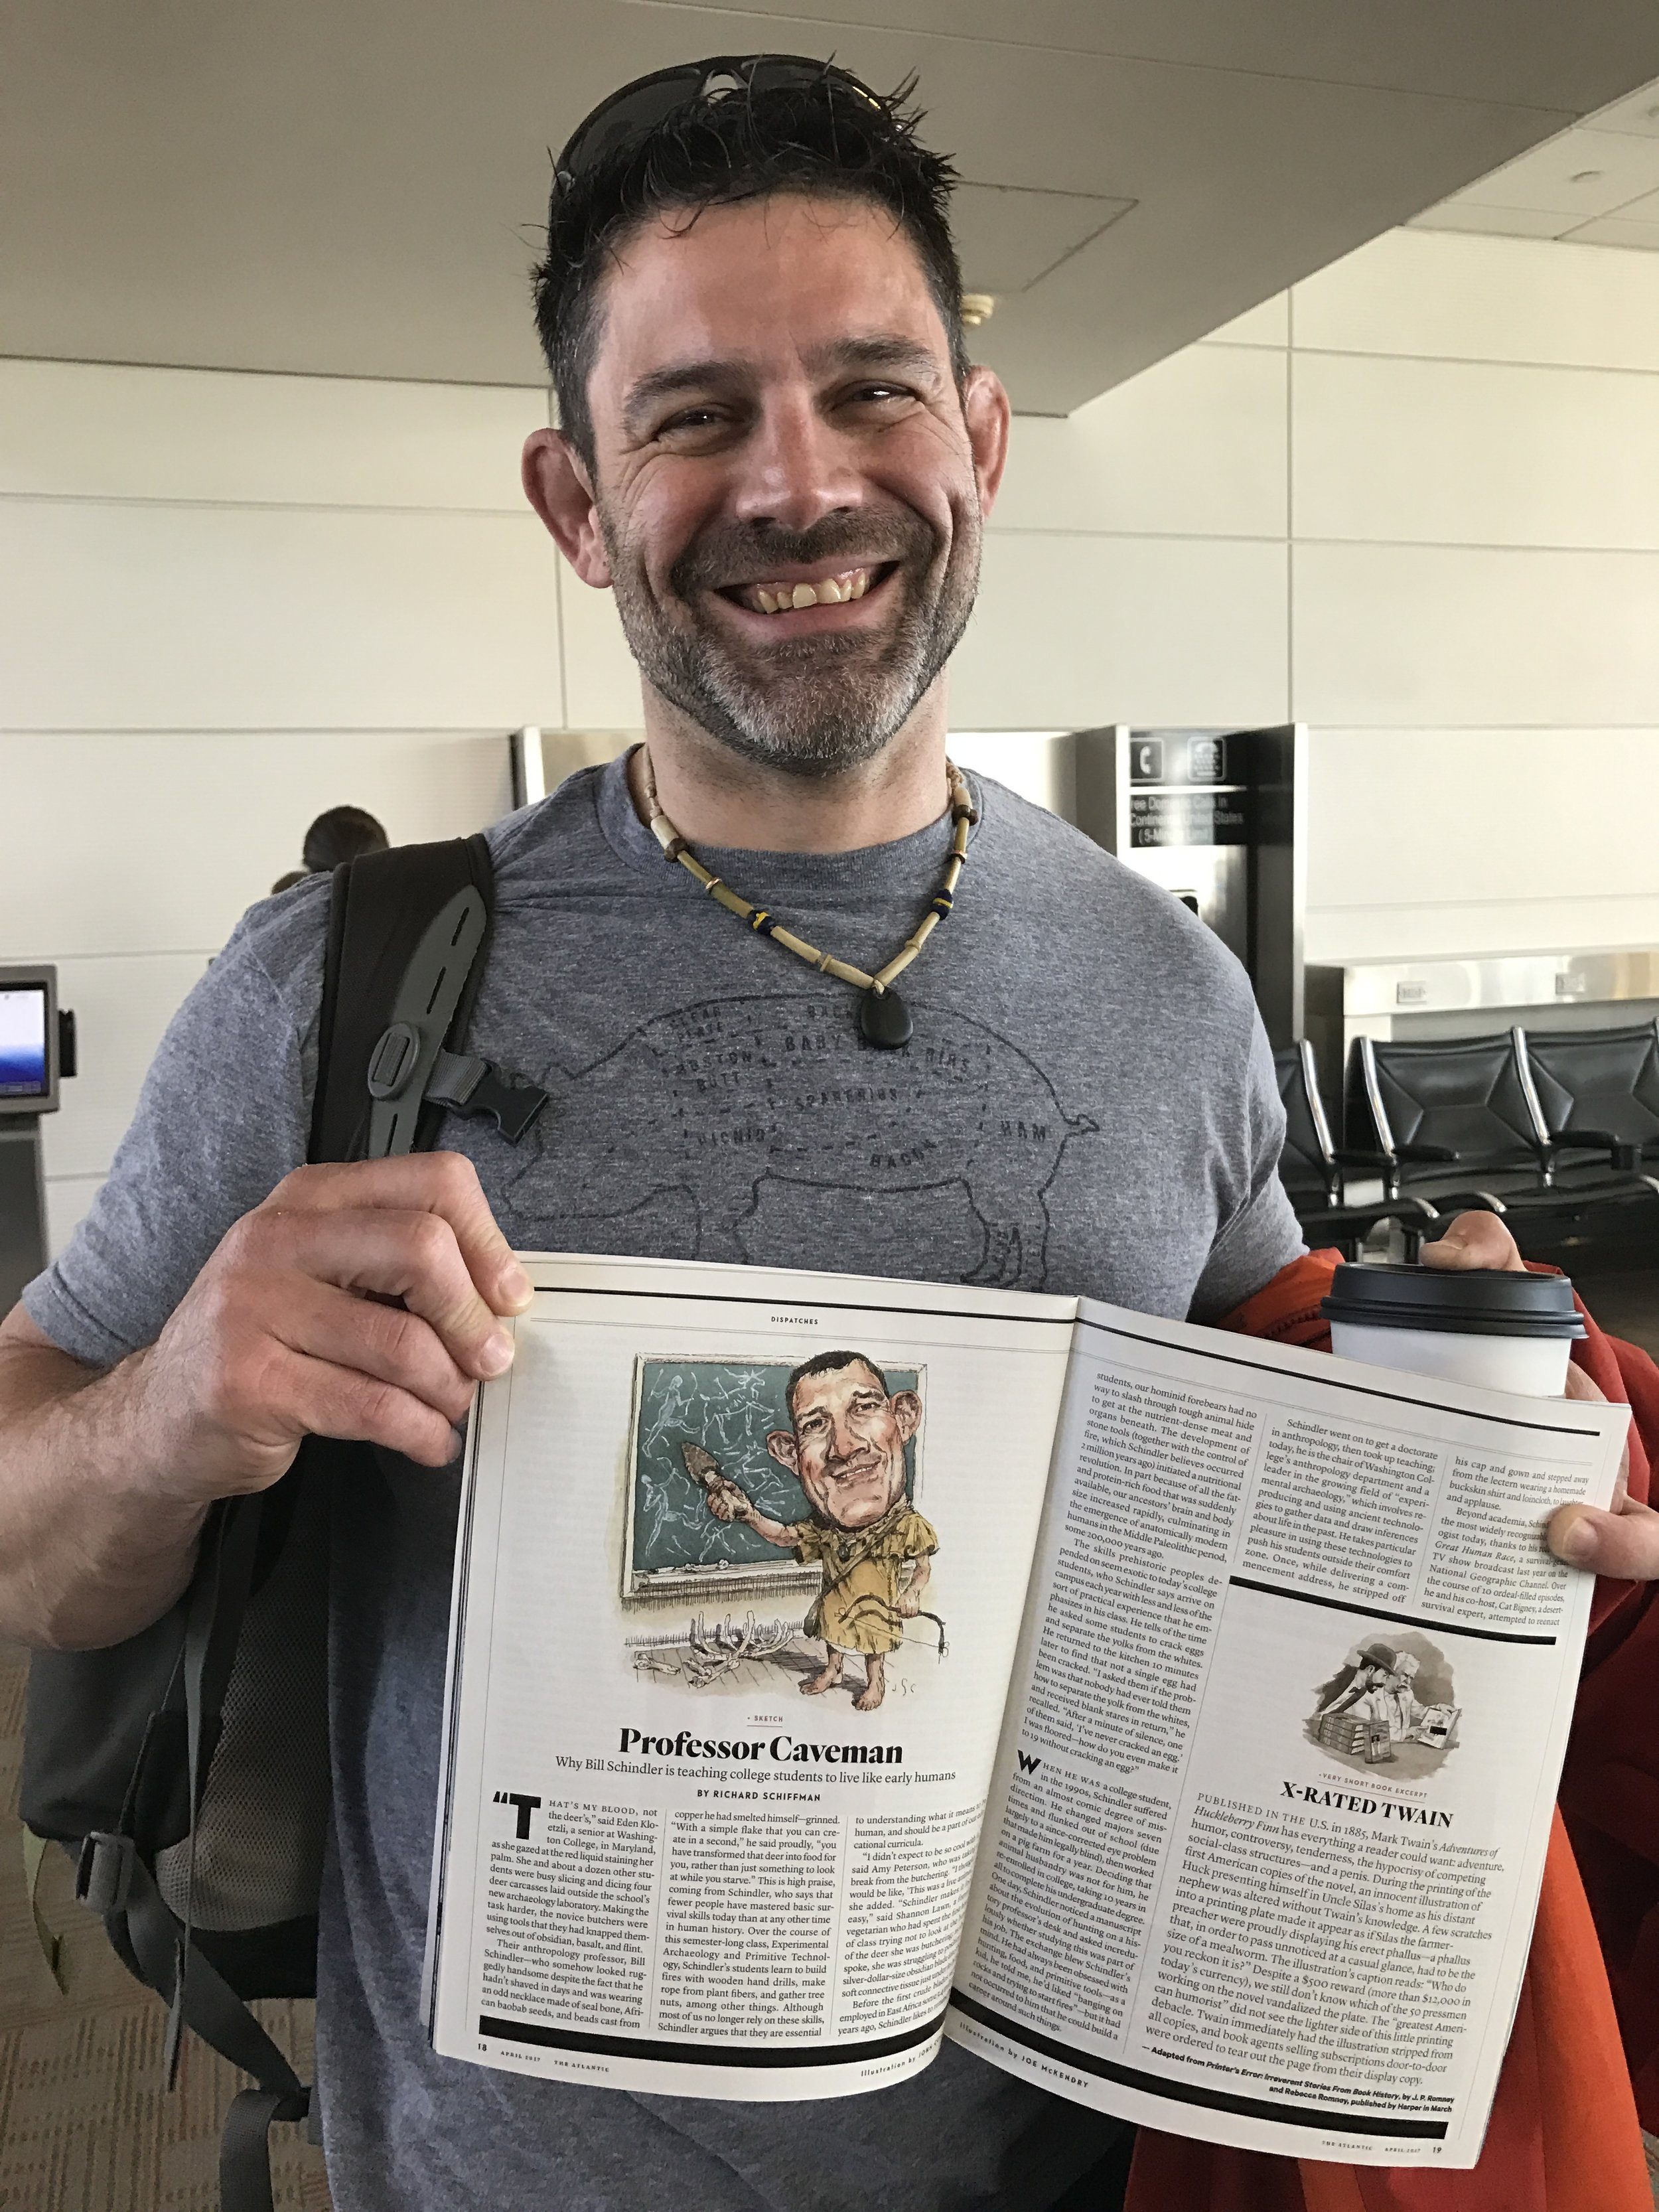 Finding The Atlantic Article in the airport on our way to Disney World!